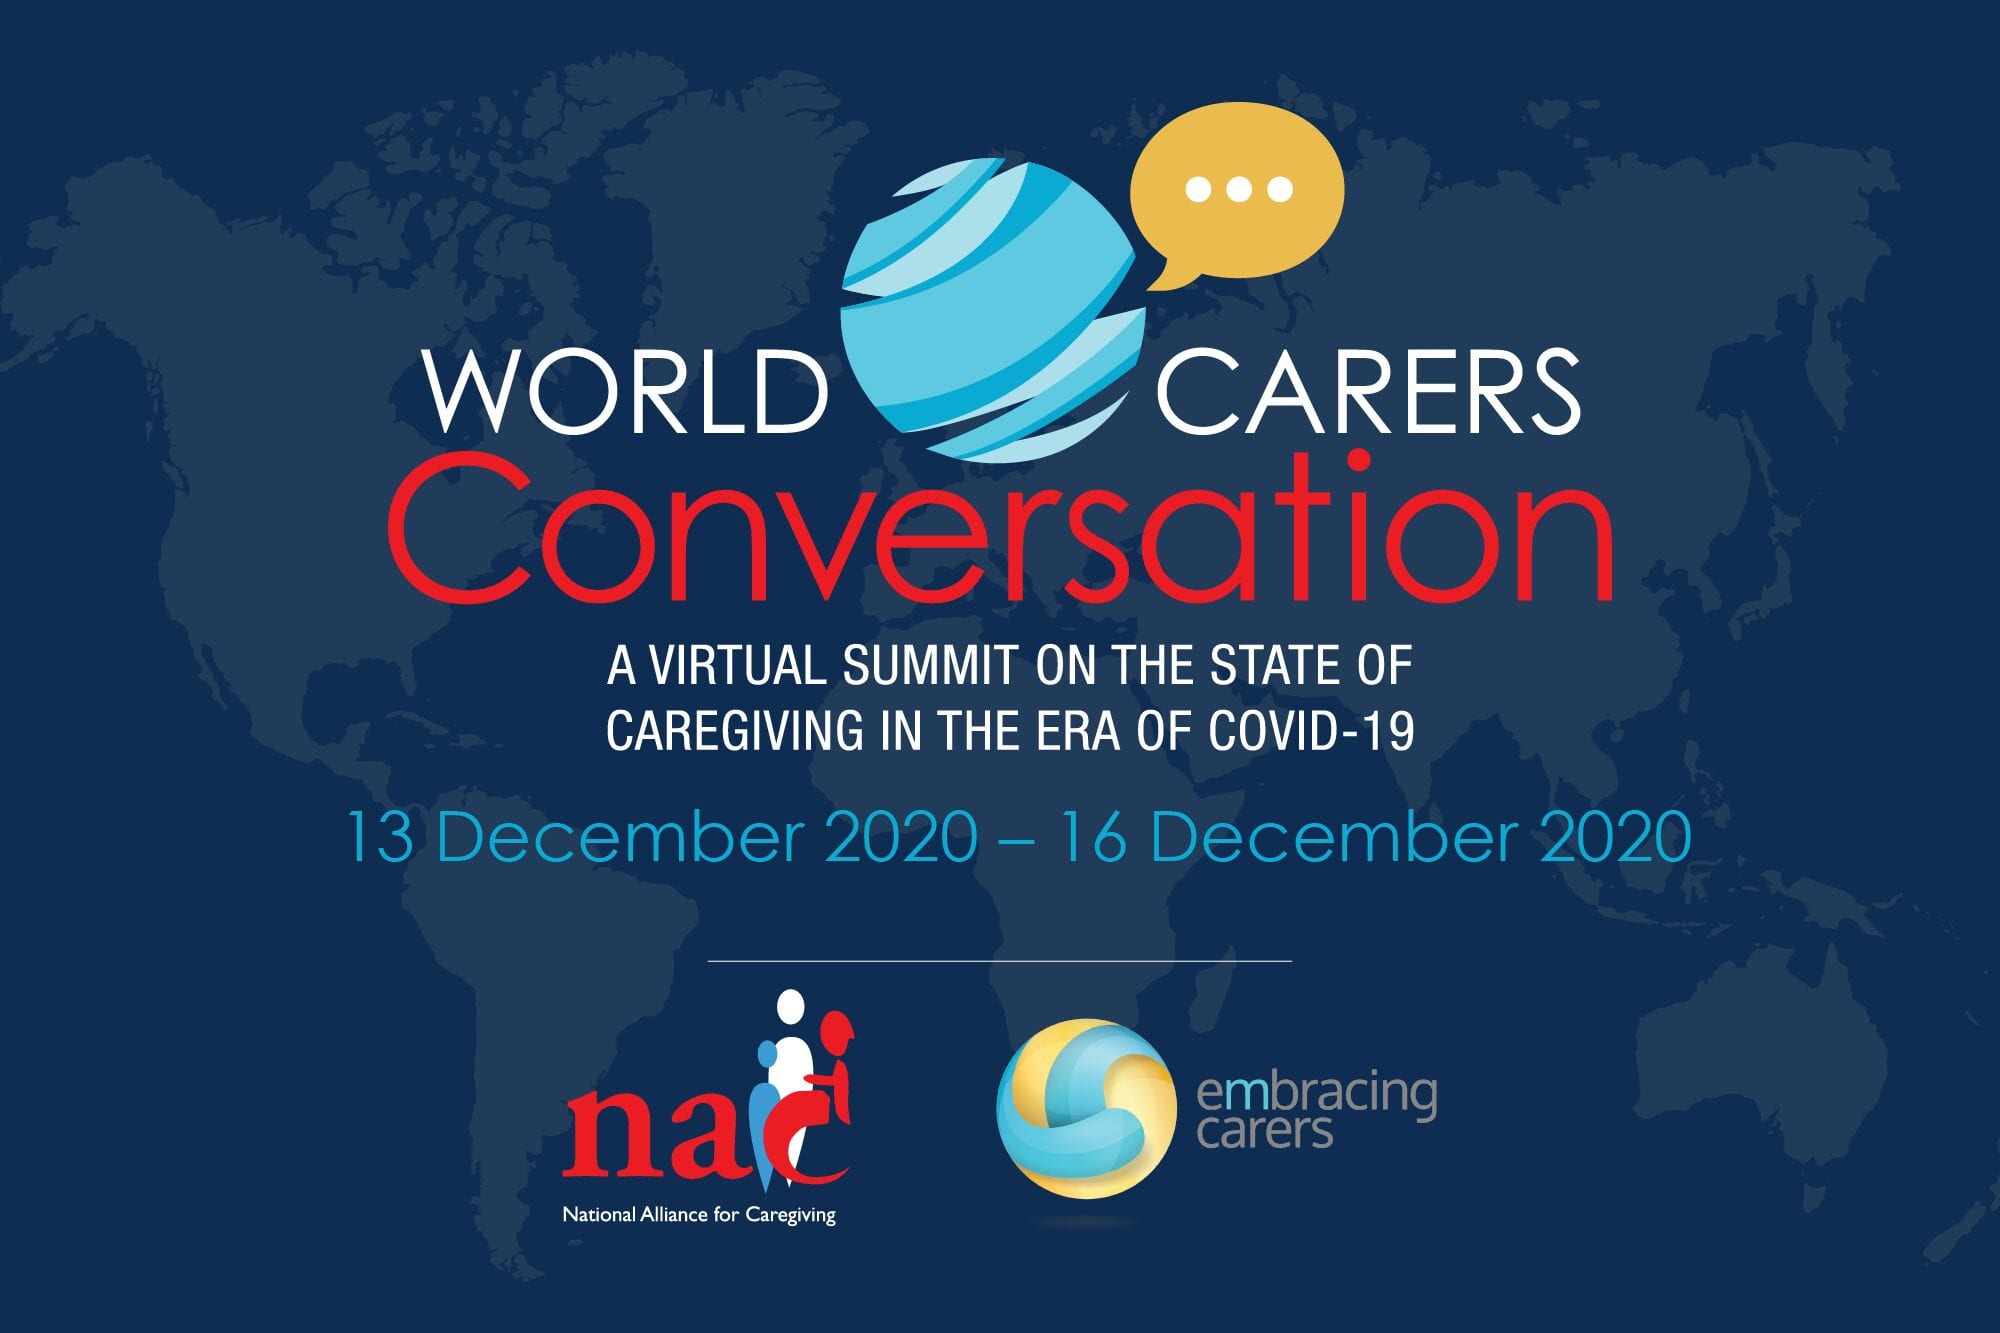 National Alliance Caregiving World Carers Conversation Summit